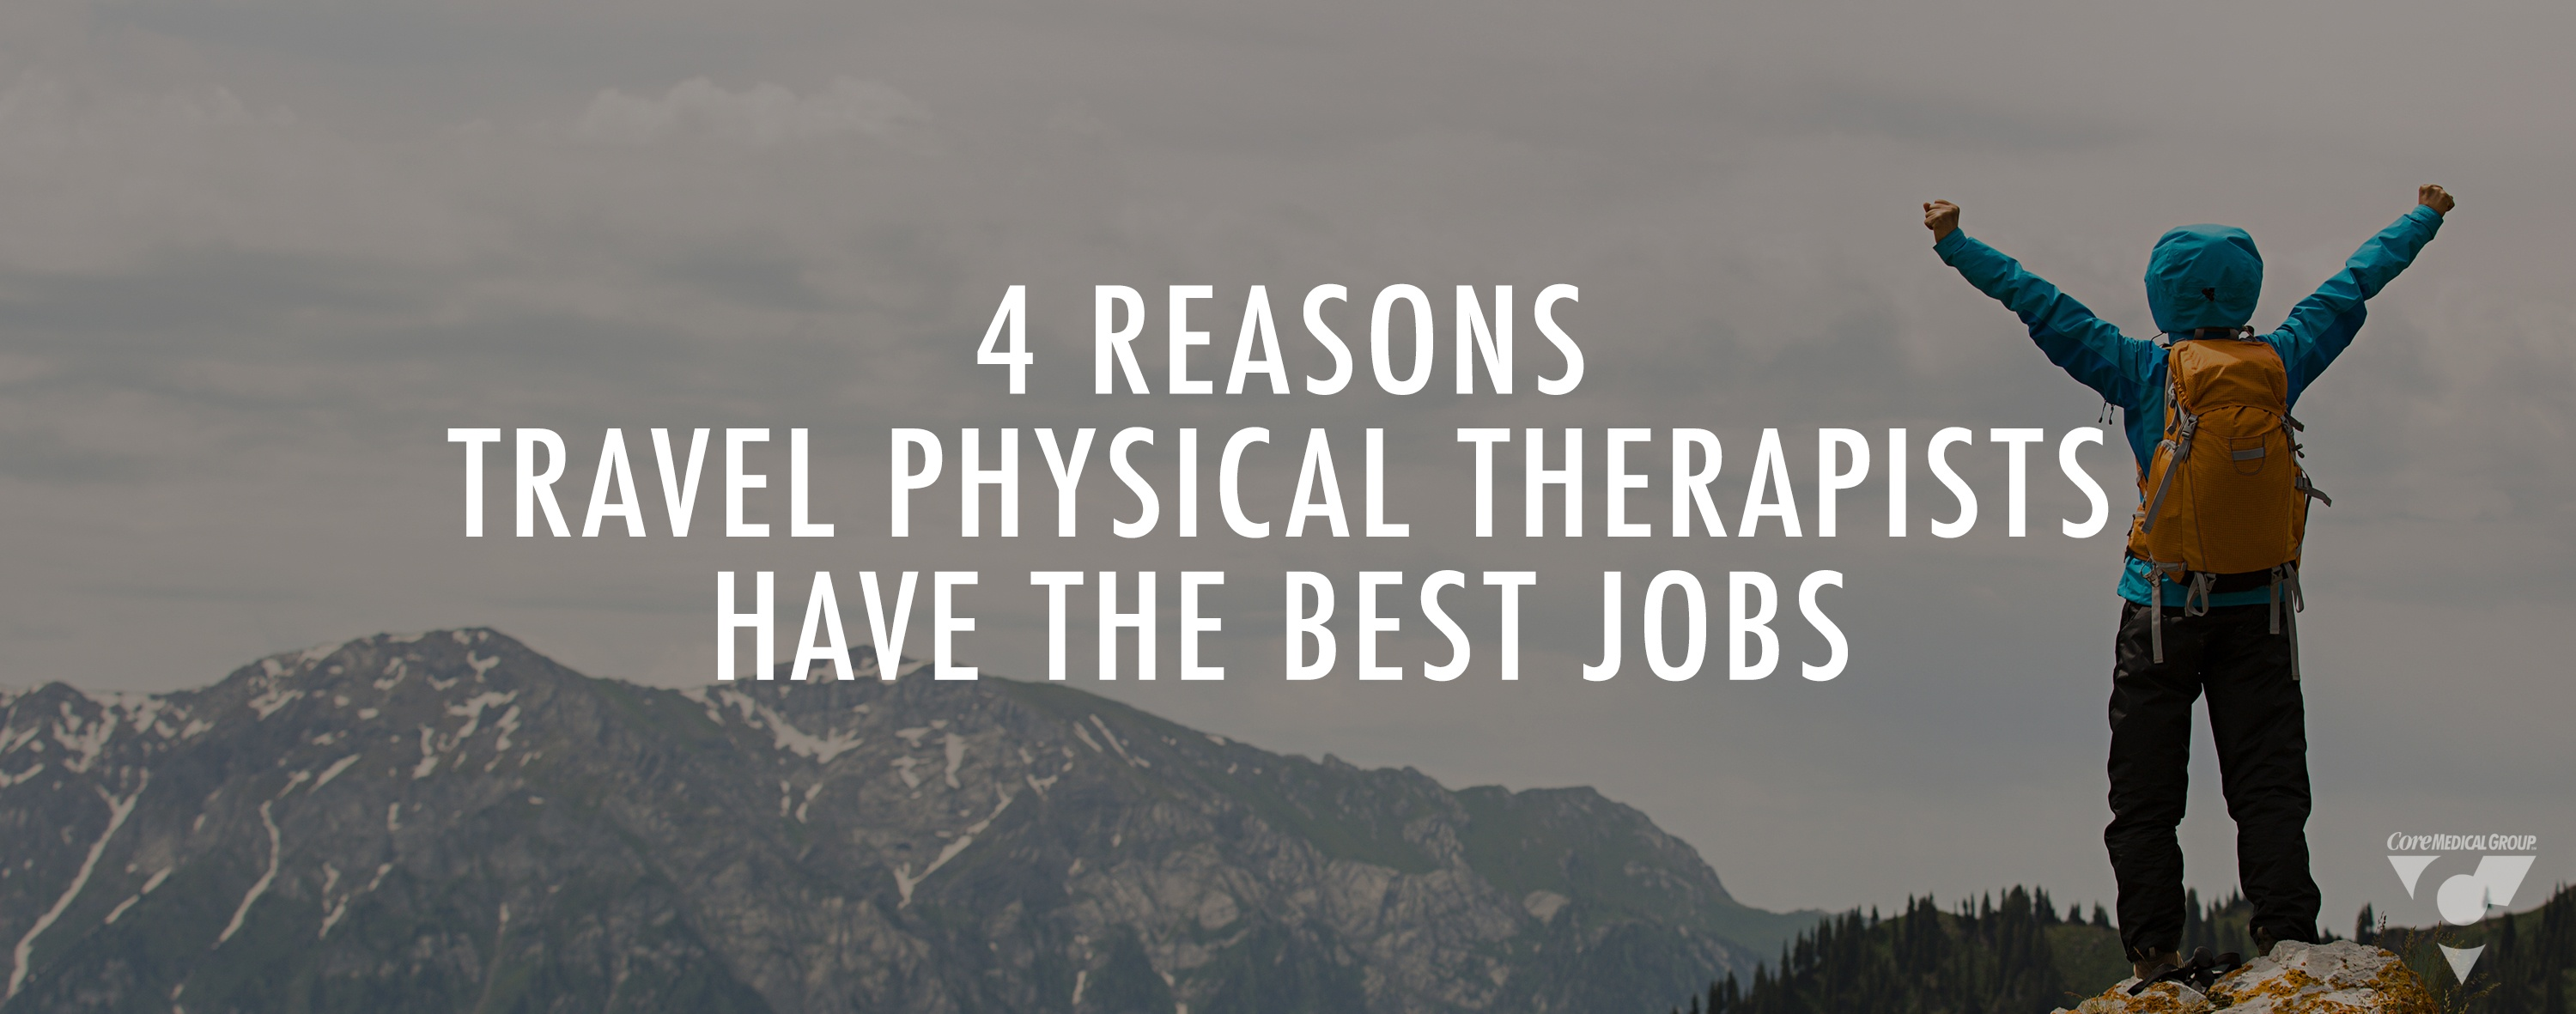 4 Reasons Travel Physical Therapists Have the Best Jobs